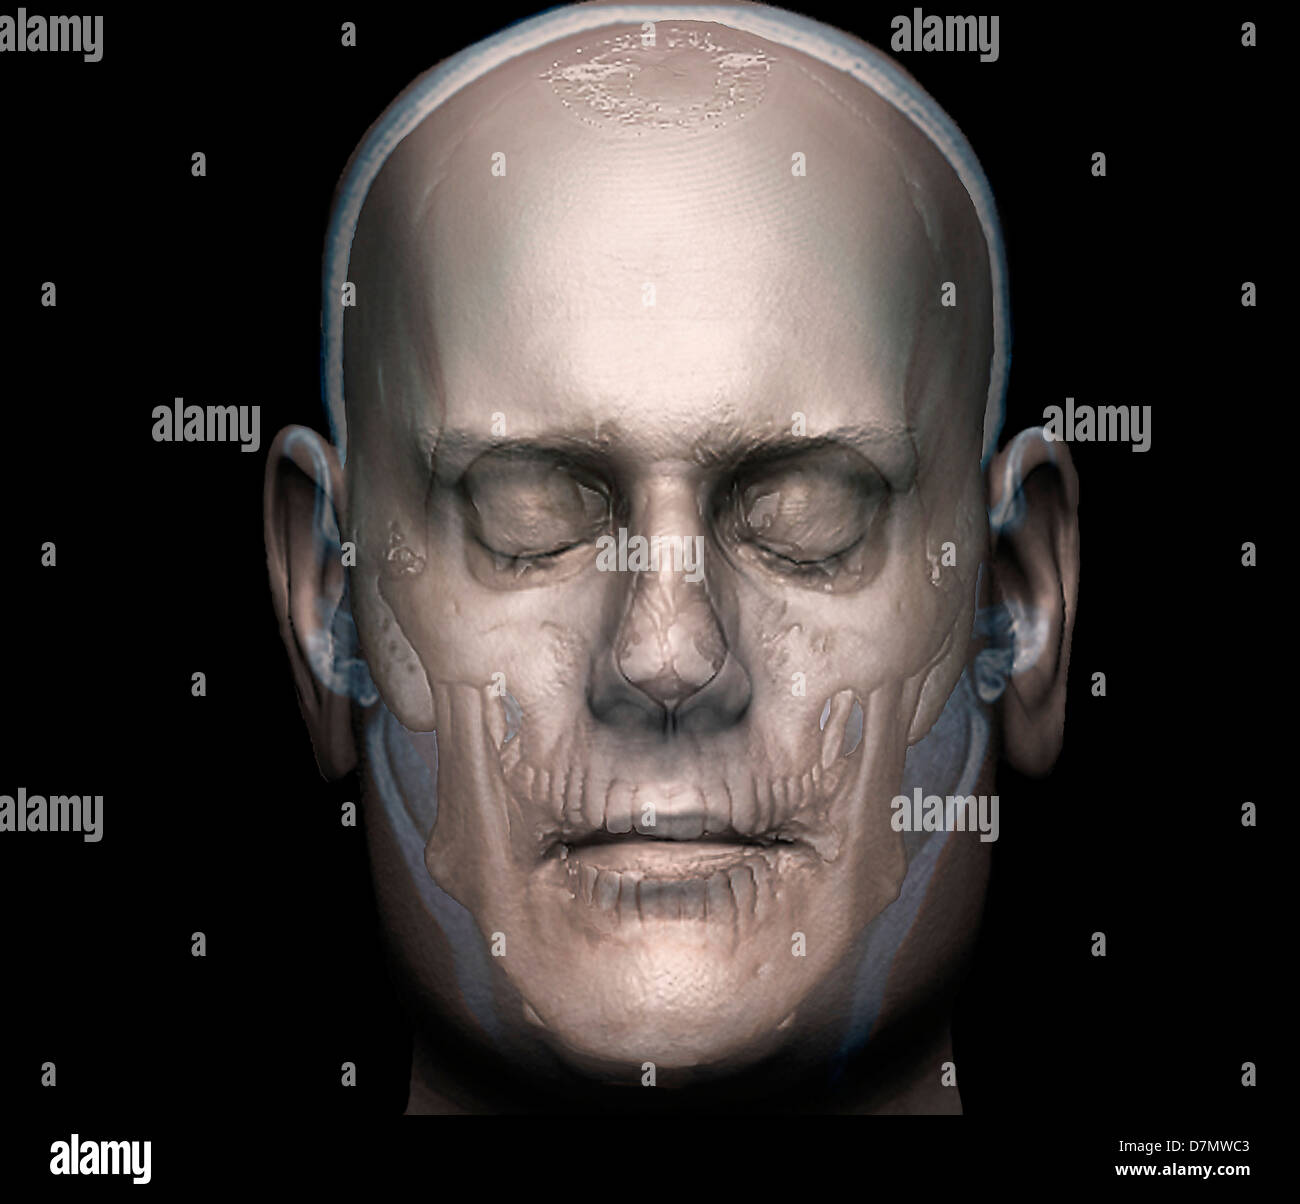 La tête humaine, 3D CT scan Photo Stock